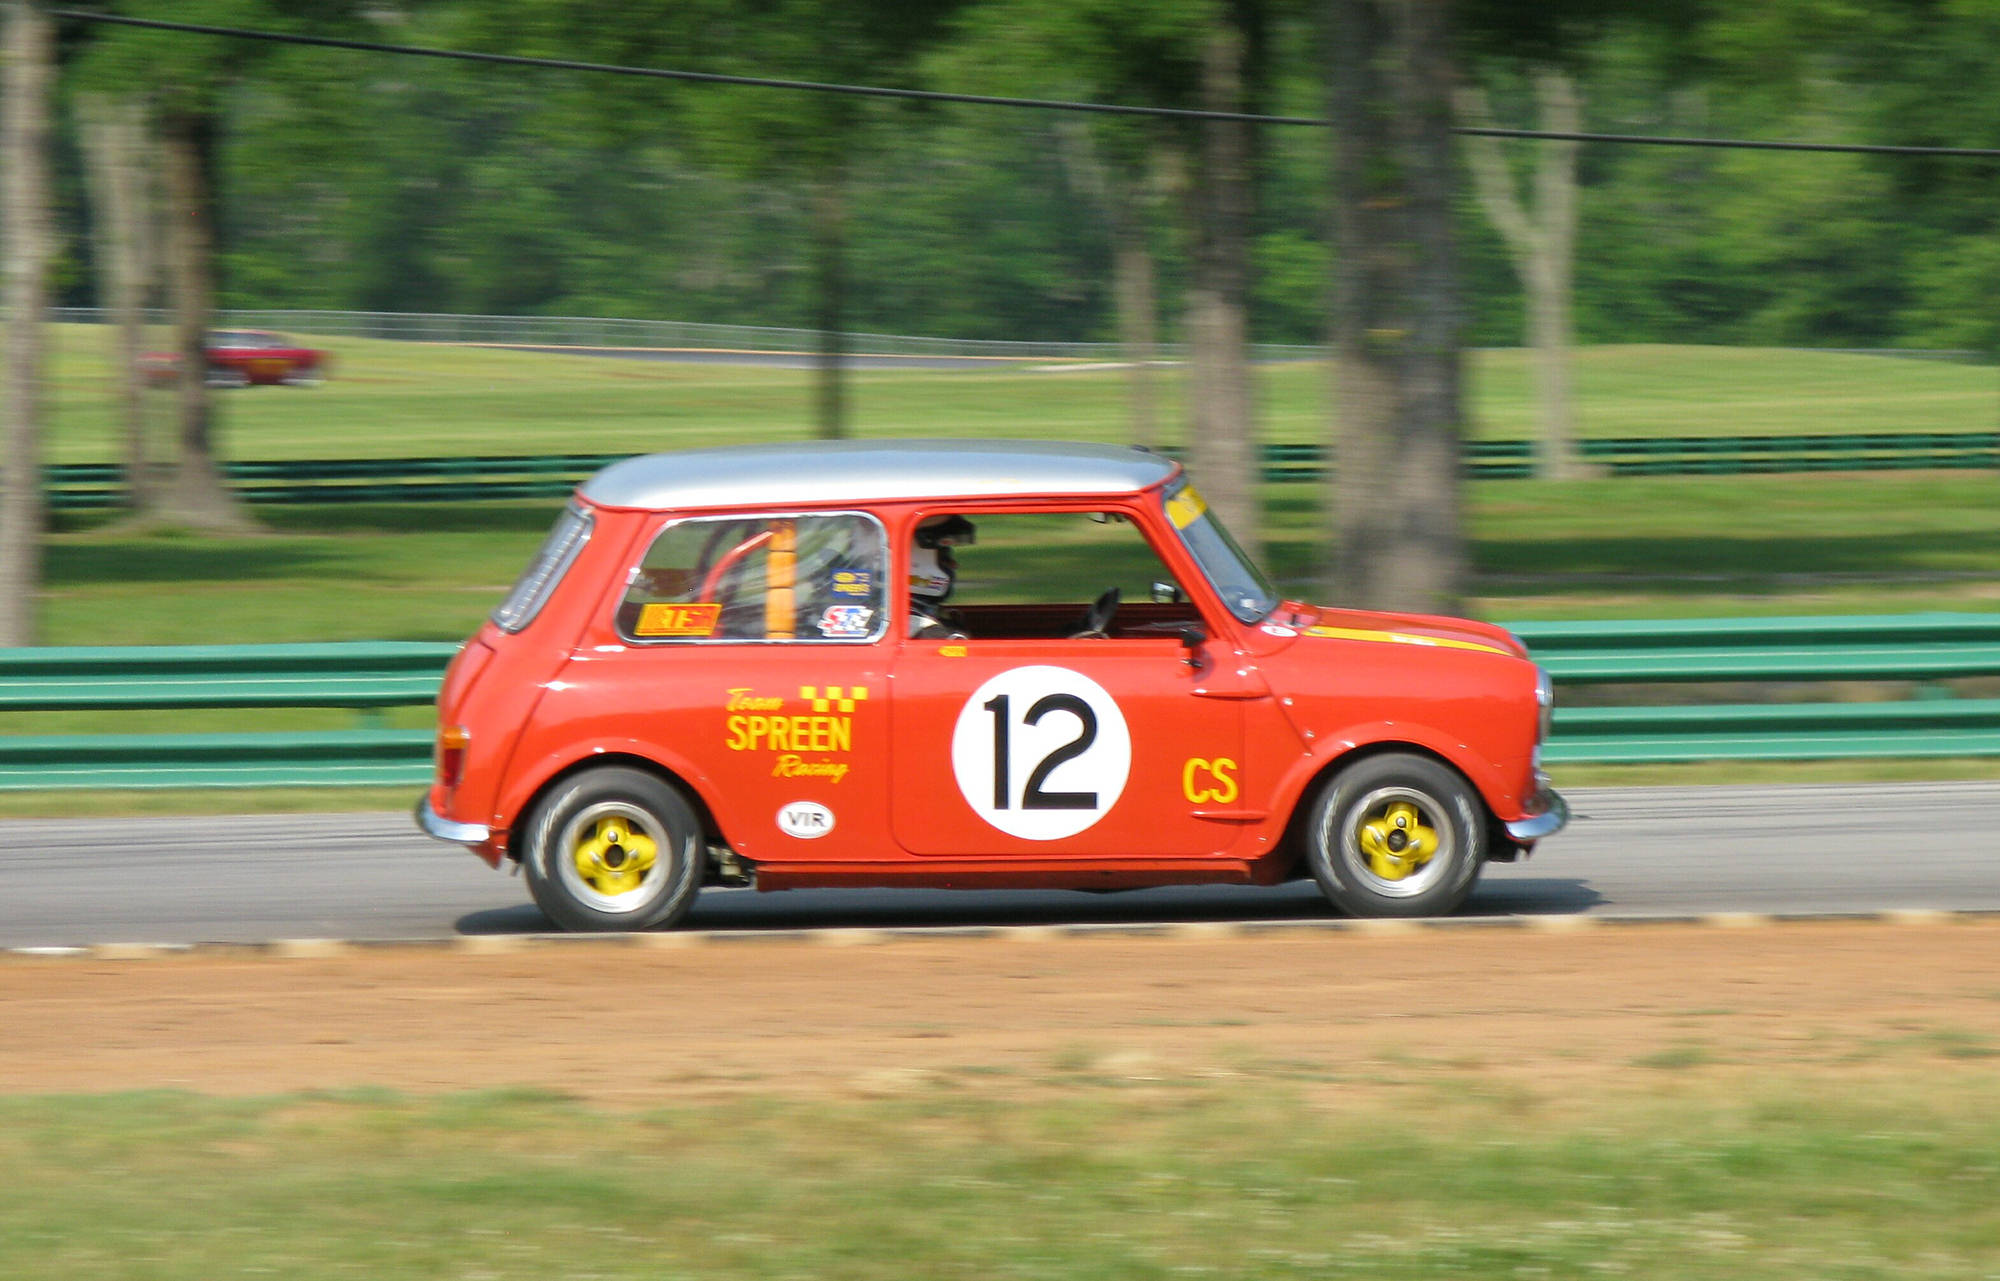 Nick Swift in the 'Ed Spreen Mini', VIR ca. 2008